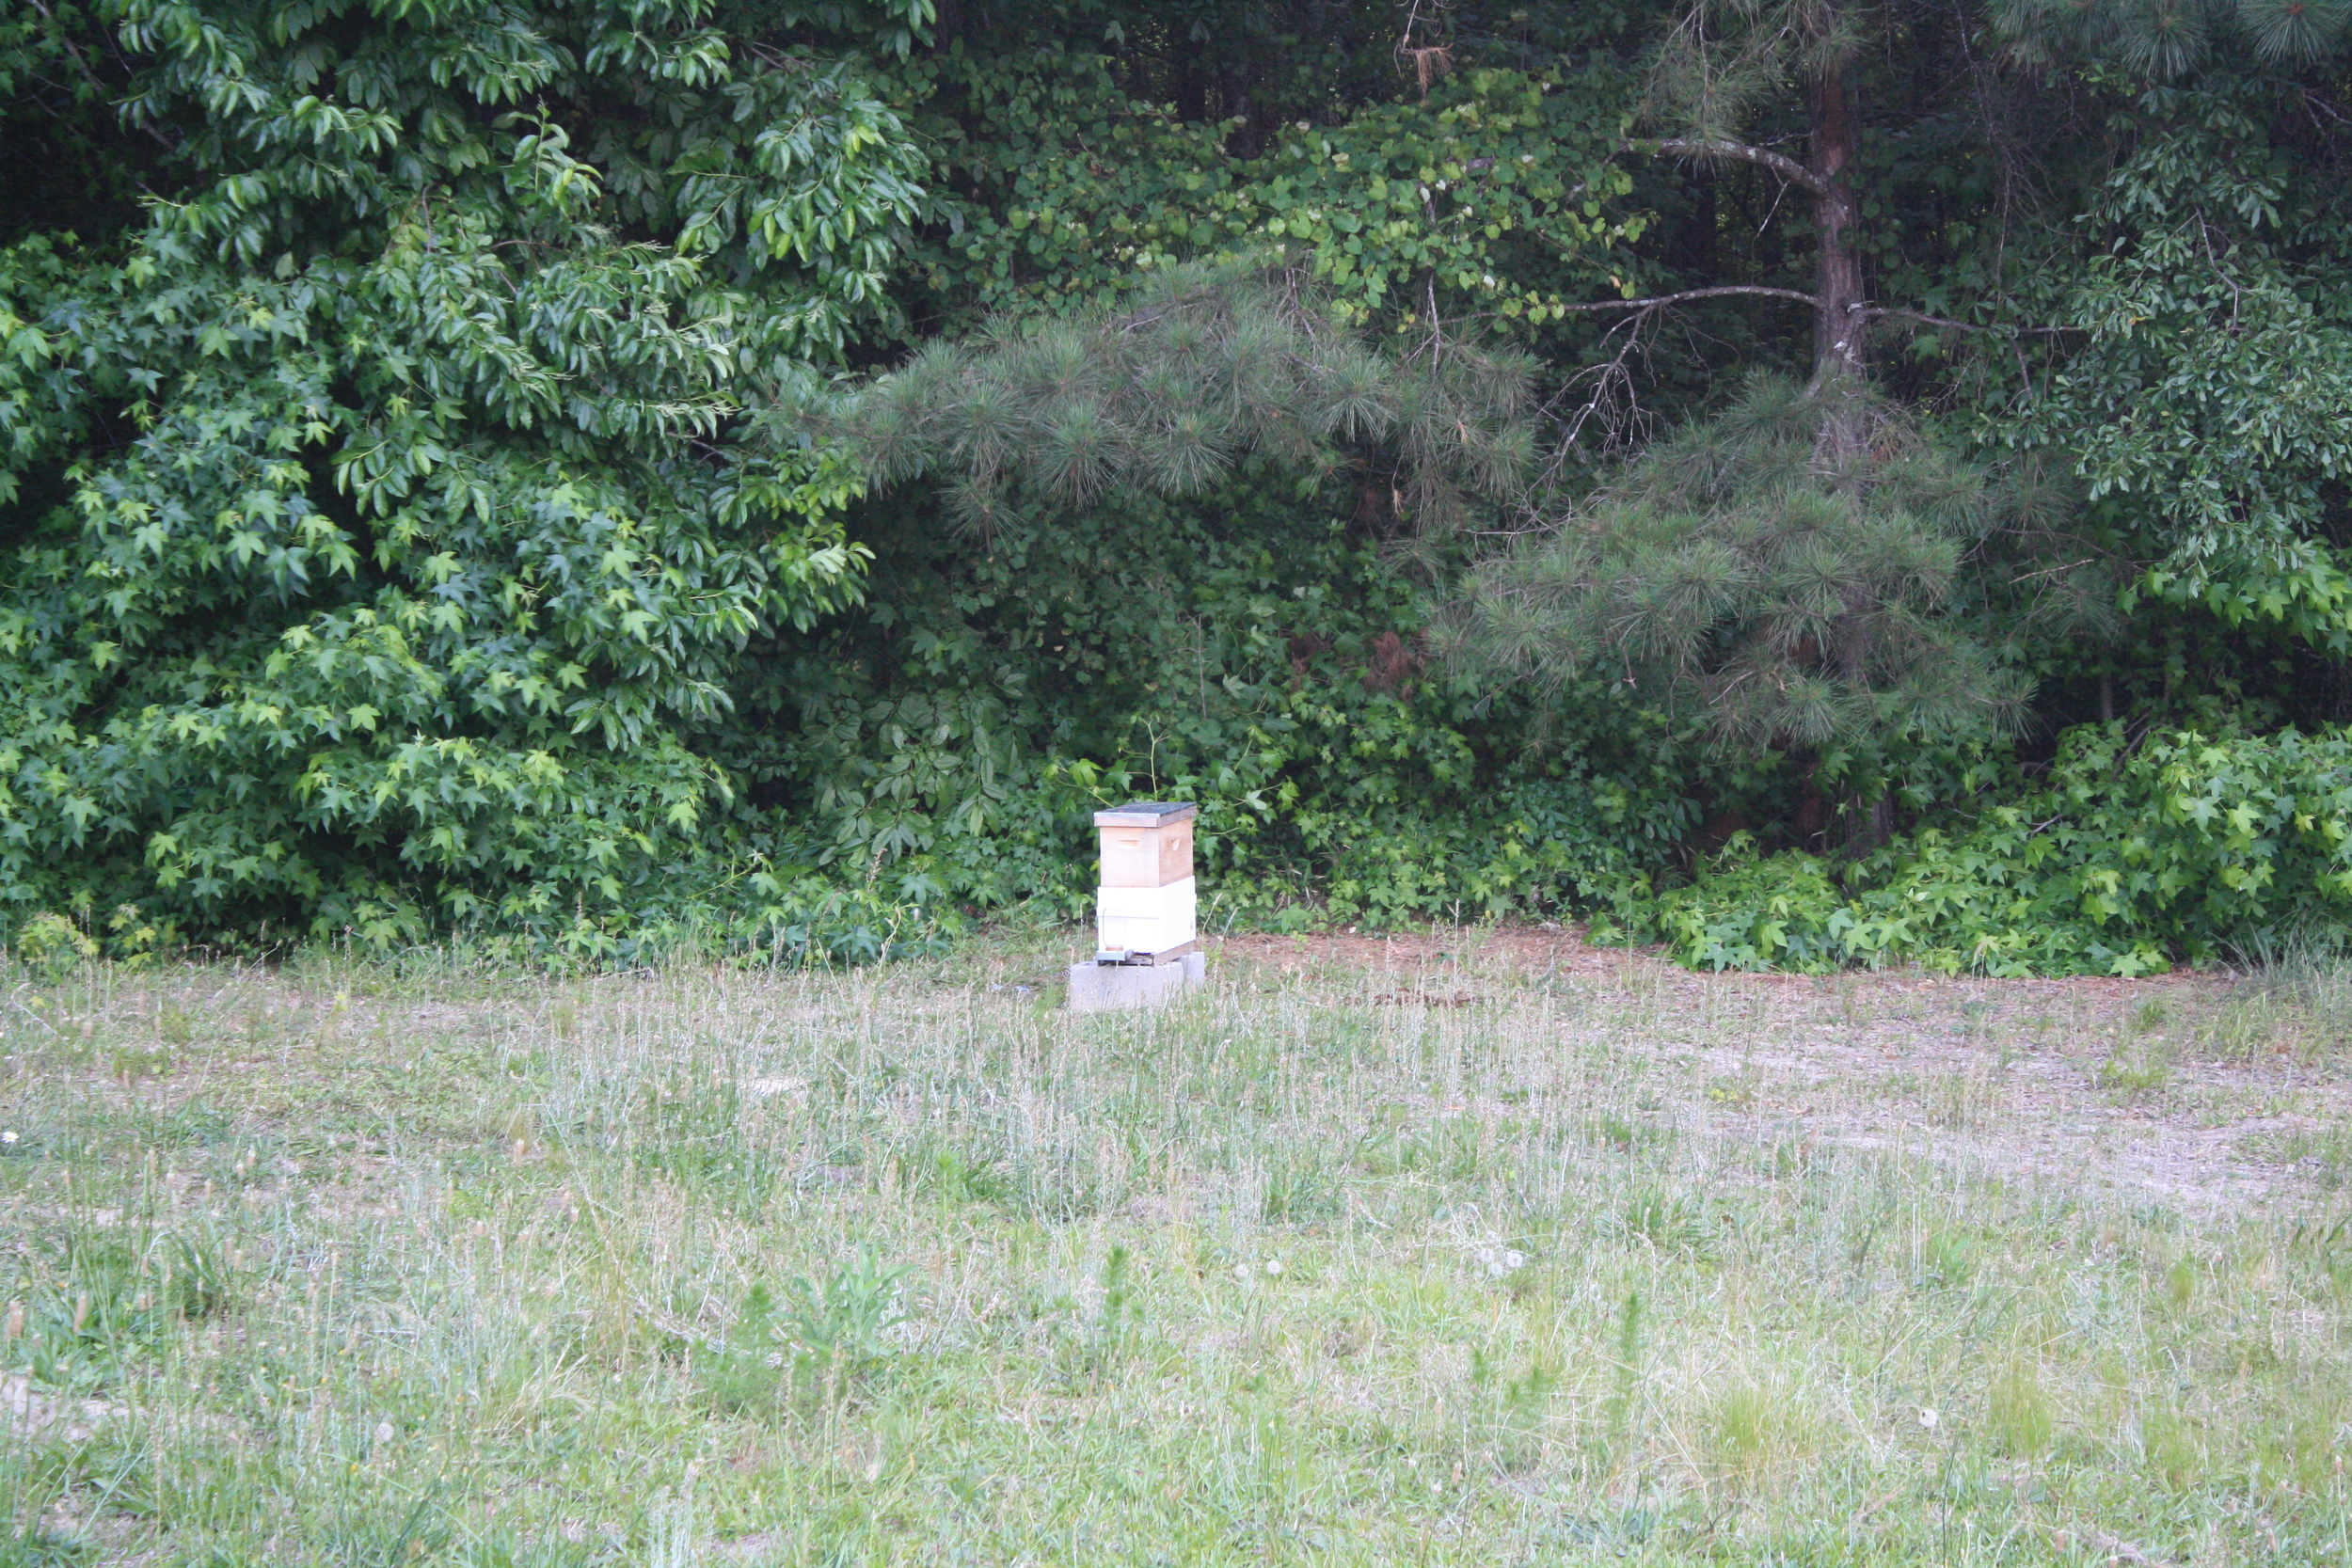 this is a relatively young hive, a two-story nuc started about 1 month ago